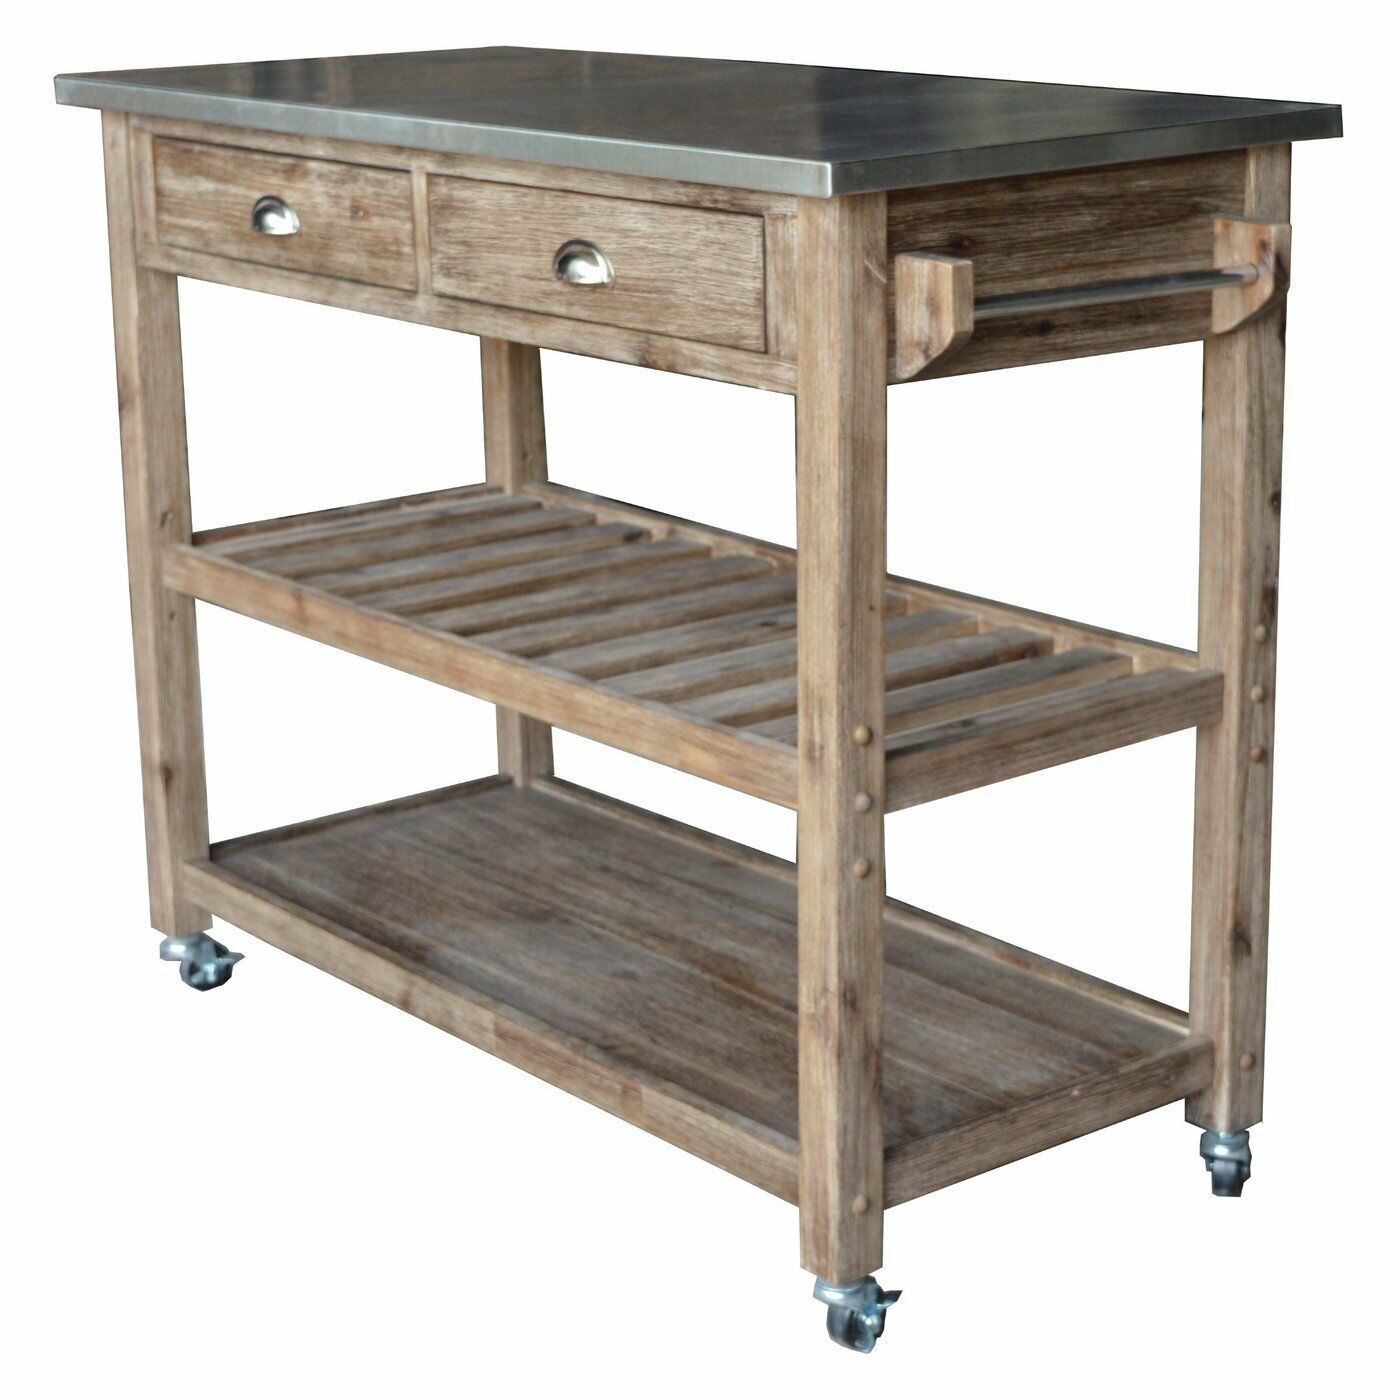 Modern Rustic Industrial Country Portable Kitchen Cart: Modern Kitchen Island Storage Cart Dining Portable Wheels